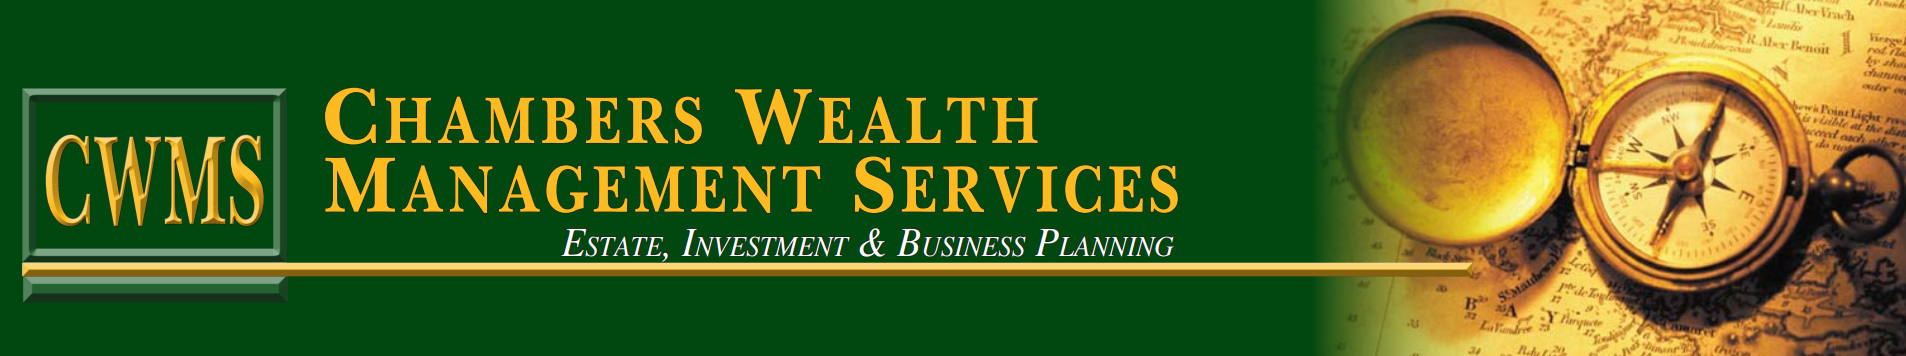 Chambers Wealth Management ServicesEstate, Investment, and Business Planning